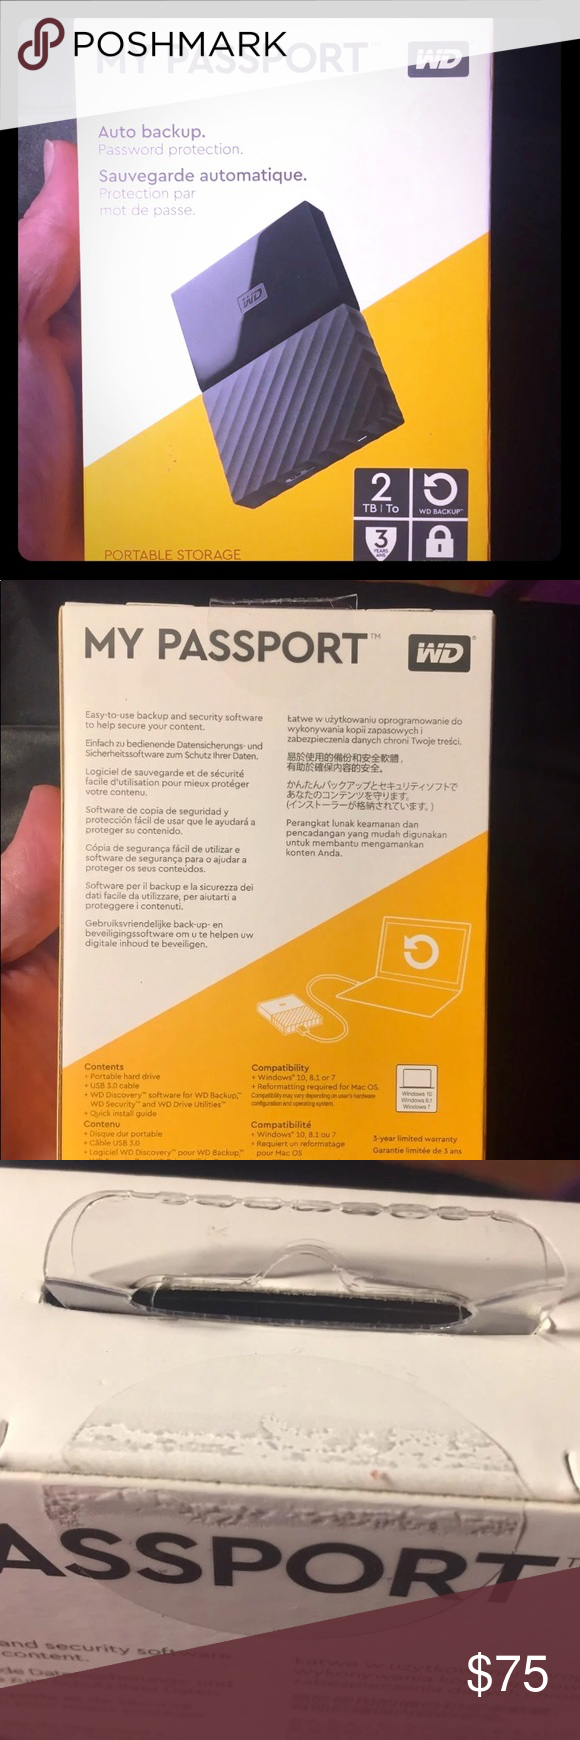 WD 2 TB External Hard Drive My Passport by Western Digital 2 TB